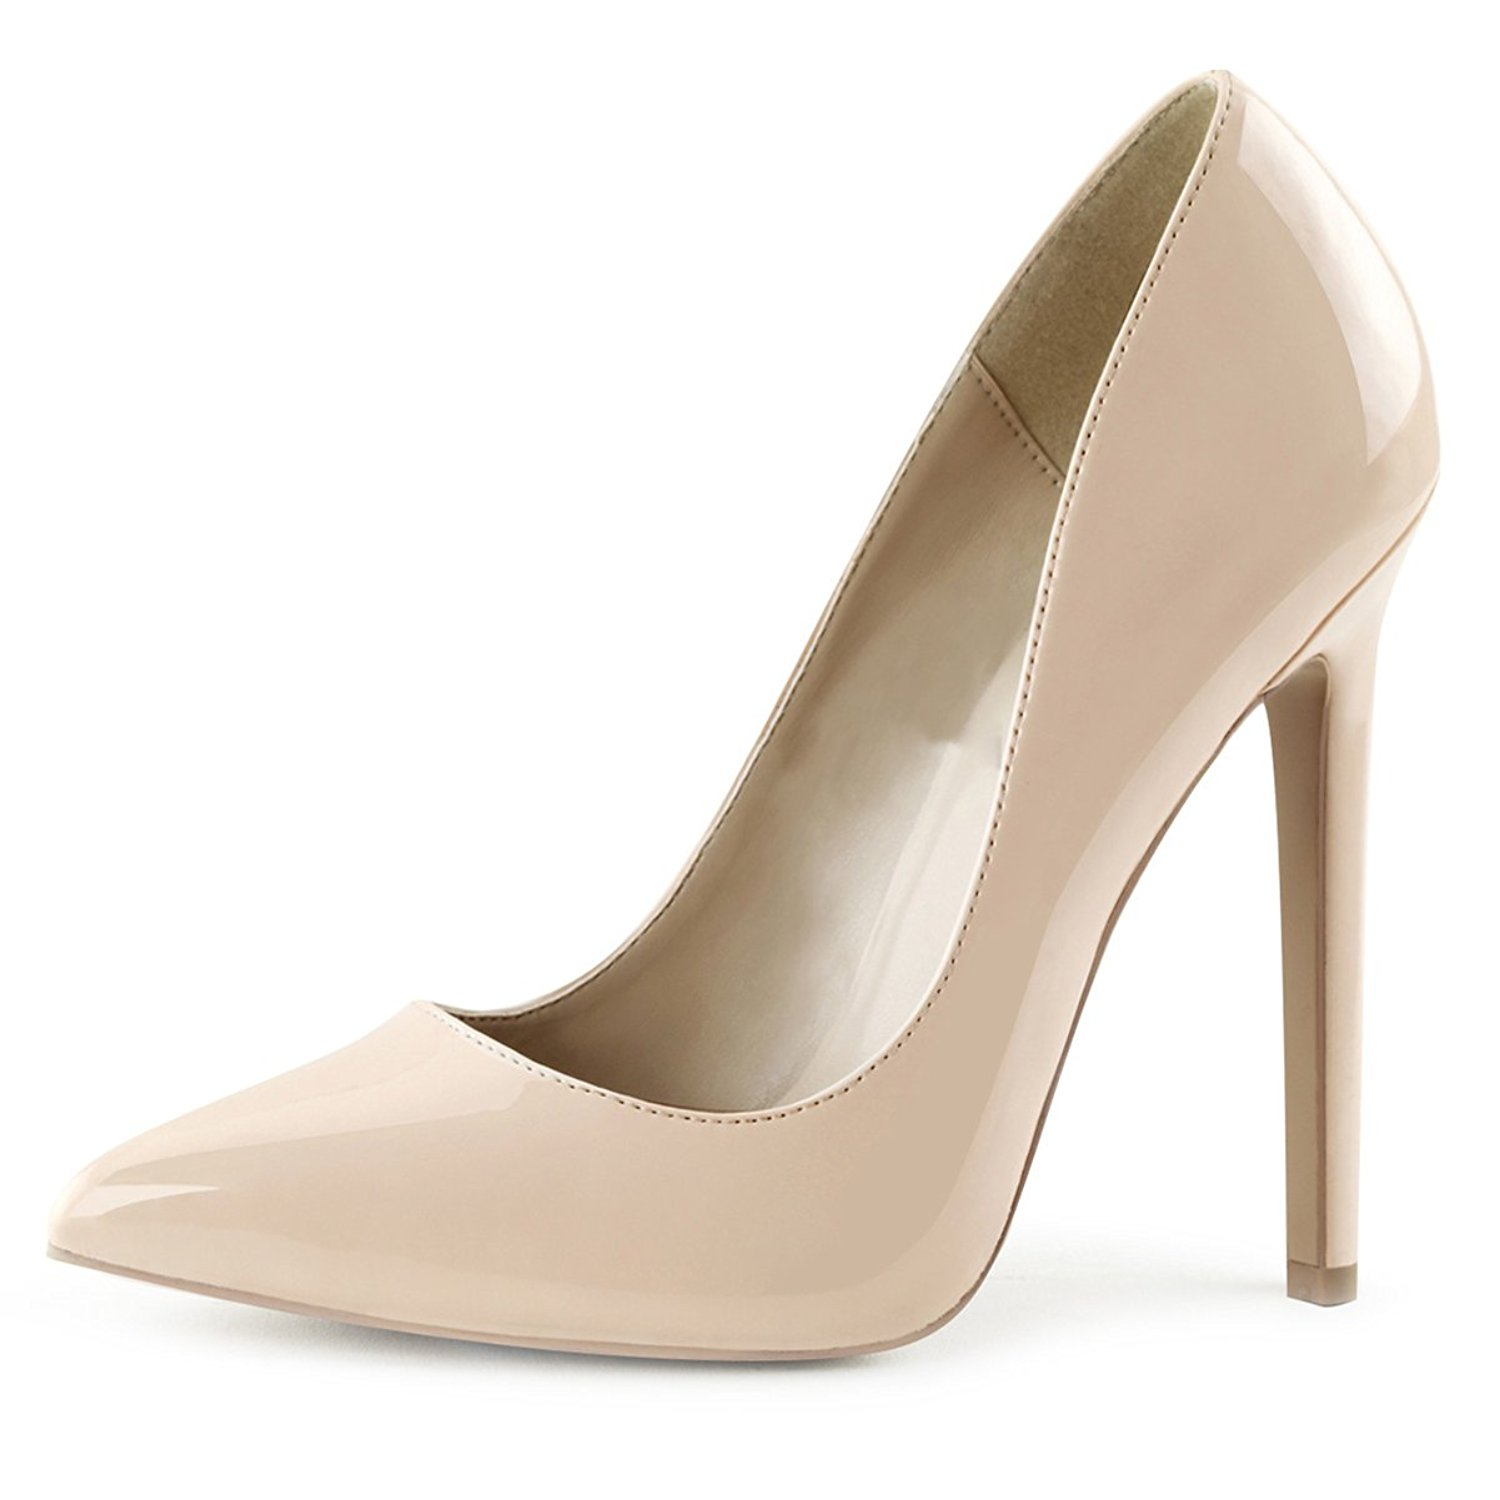 e1a2724ae20 Get Quotations · Summitfashions Womens Nude Color Heels Classic Pointed Toe  Pumps Shiny Stilettos 5 Inch Heels